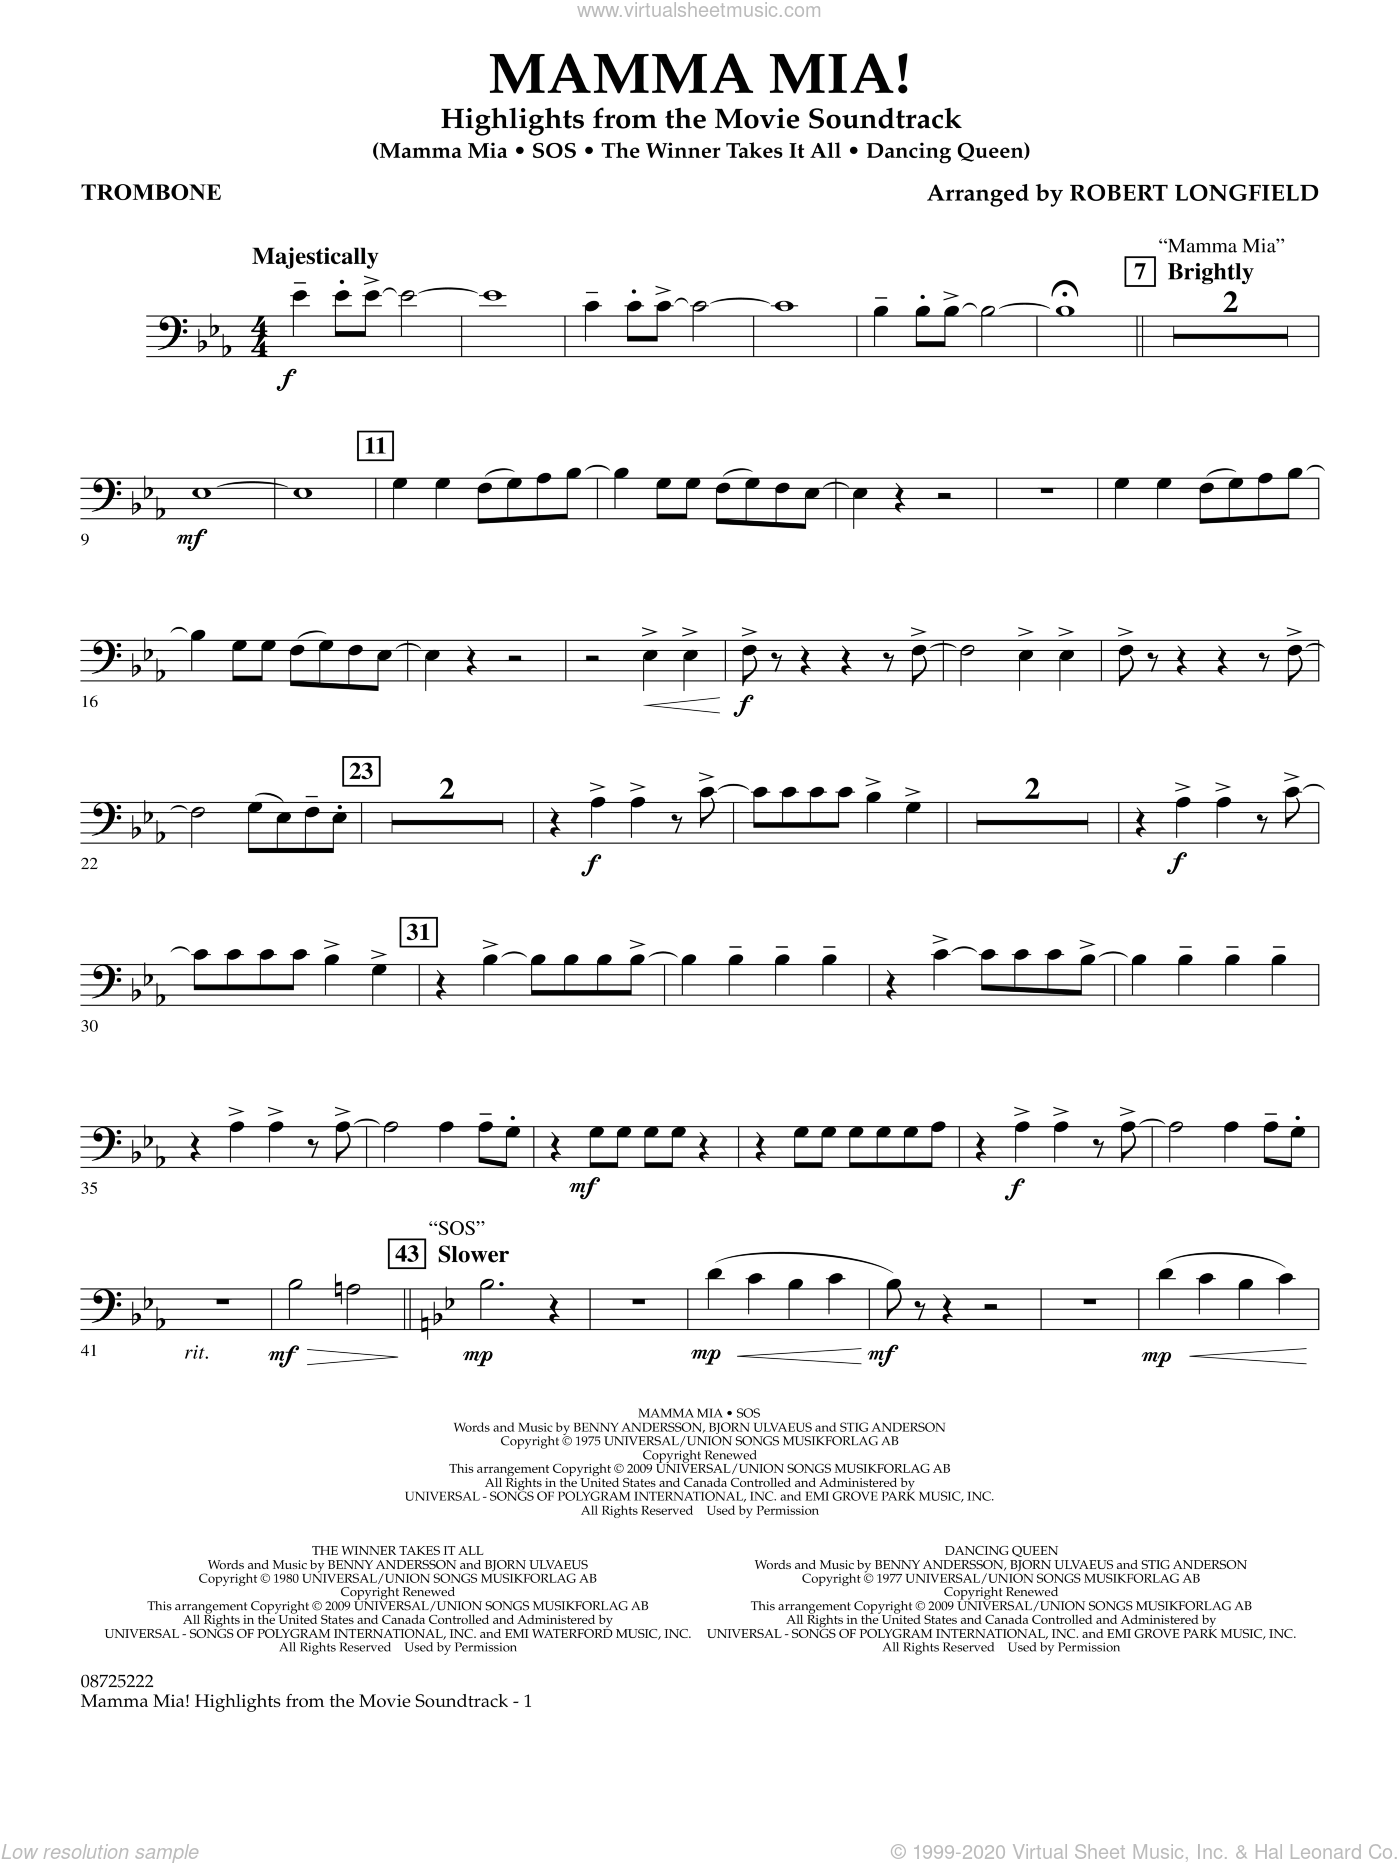 Mamma Mia!, highlights from the movie soundtrack sheet music for concert band (trombone) by Robert Longfield